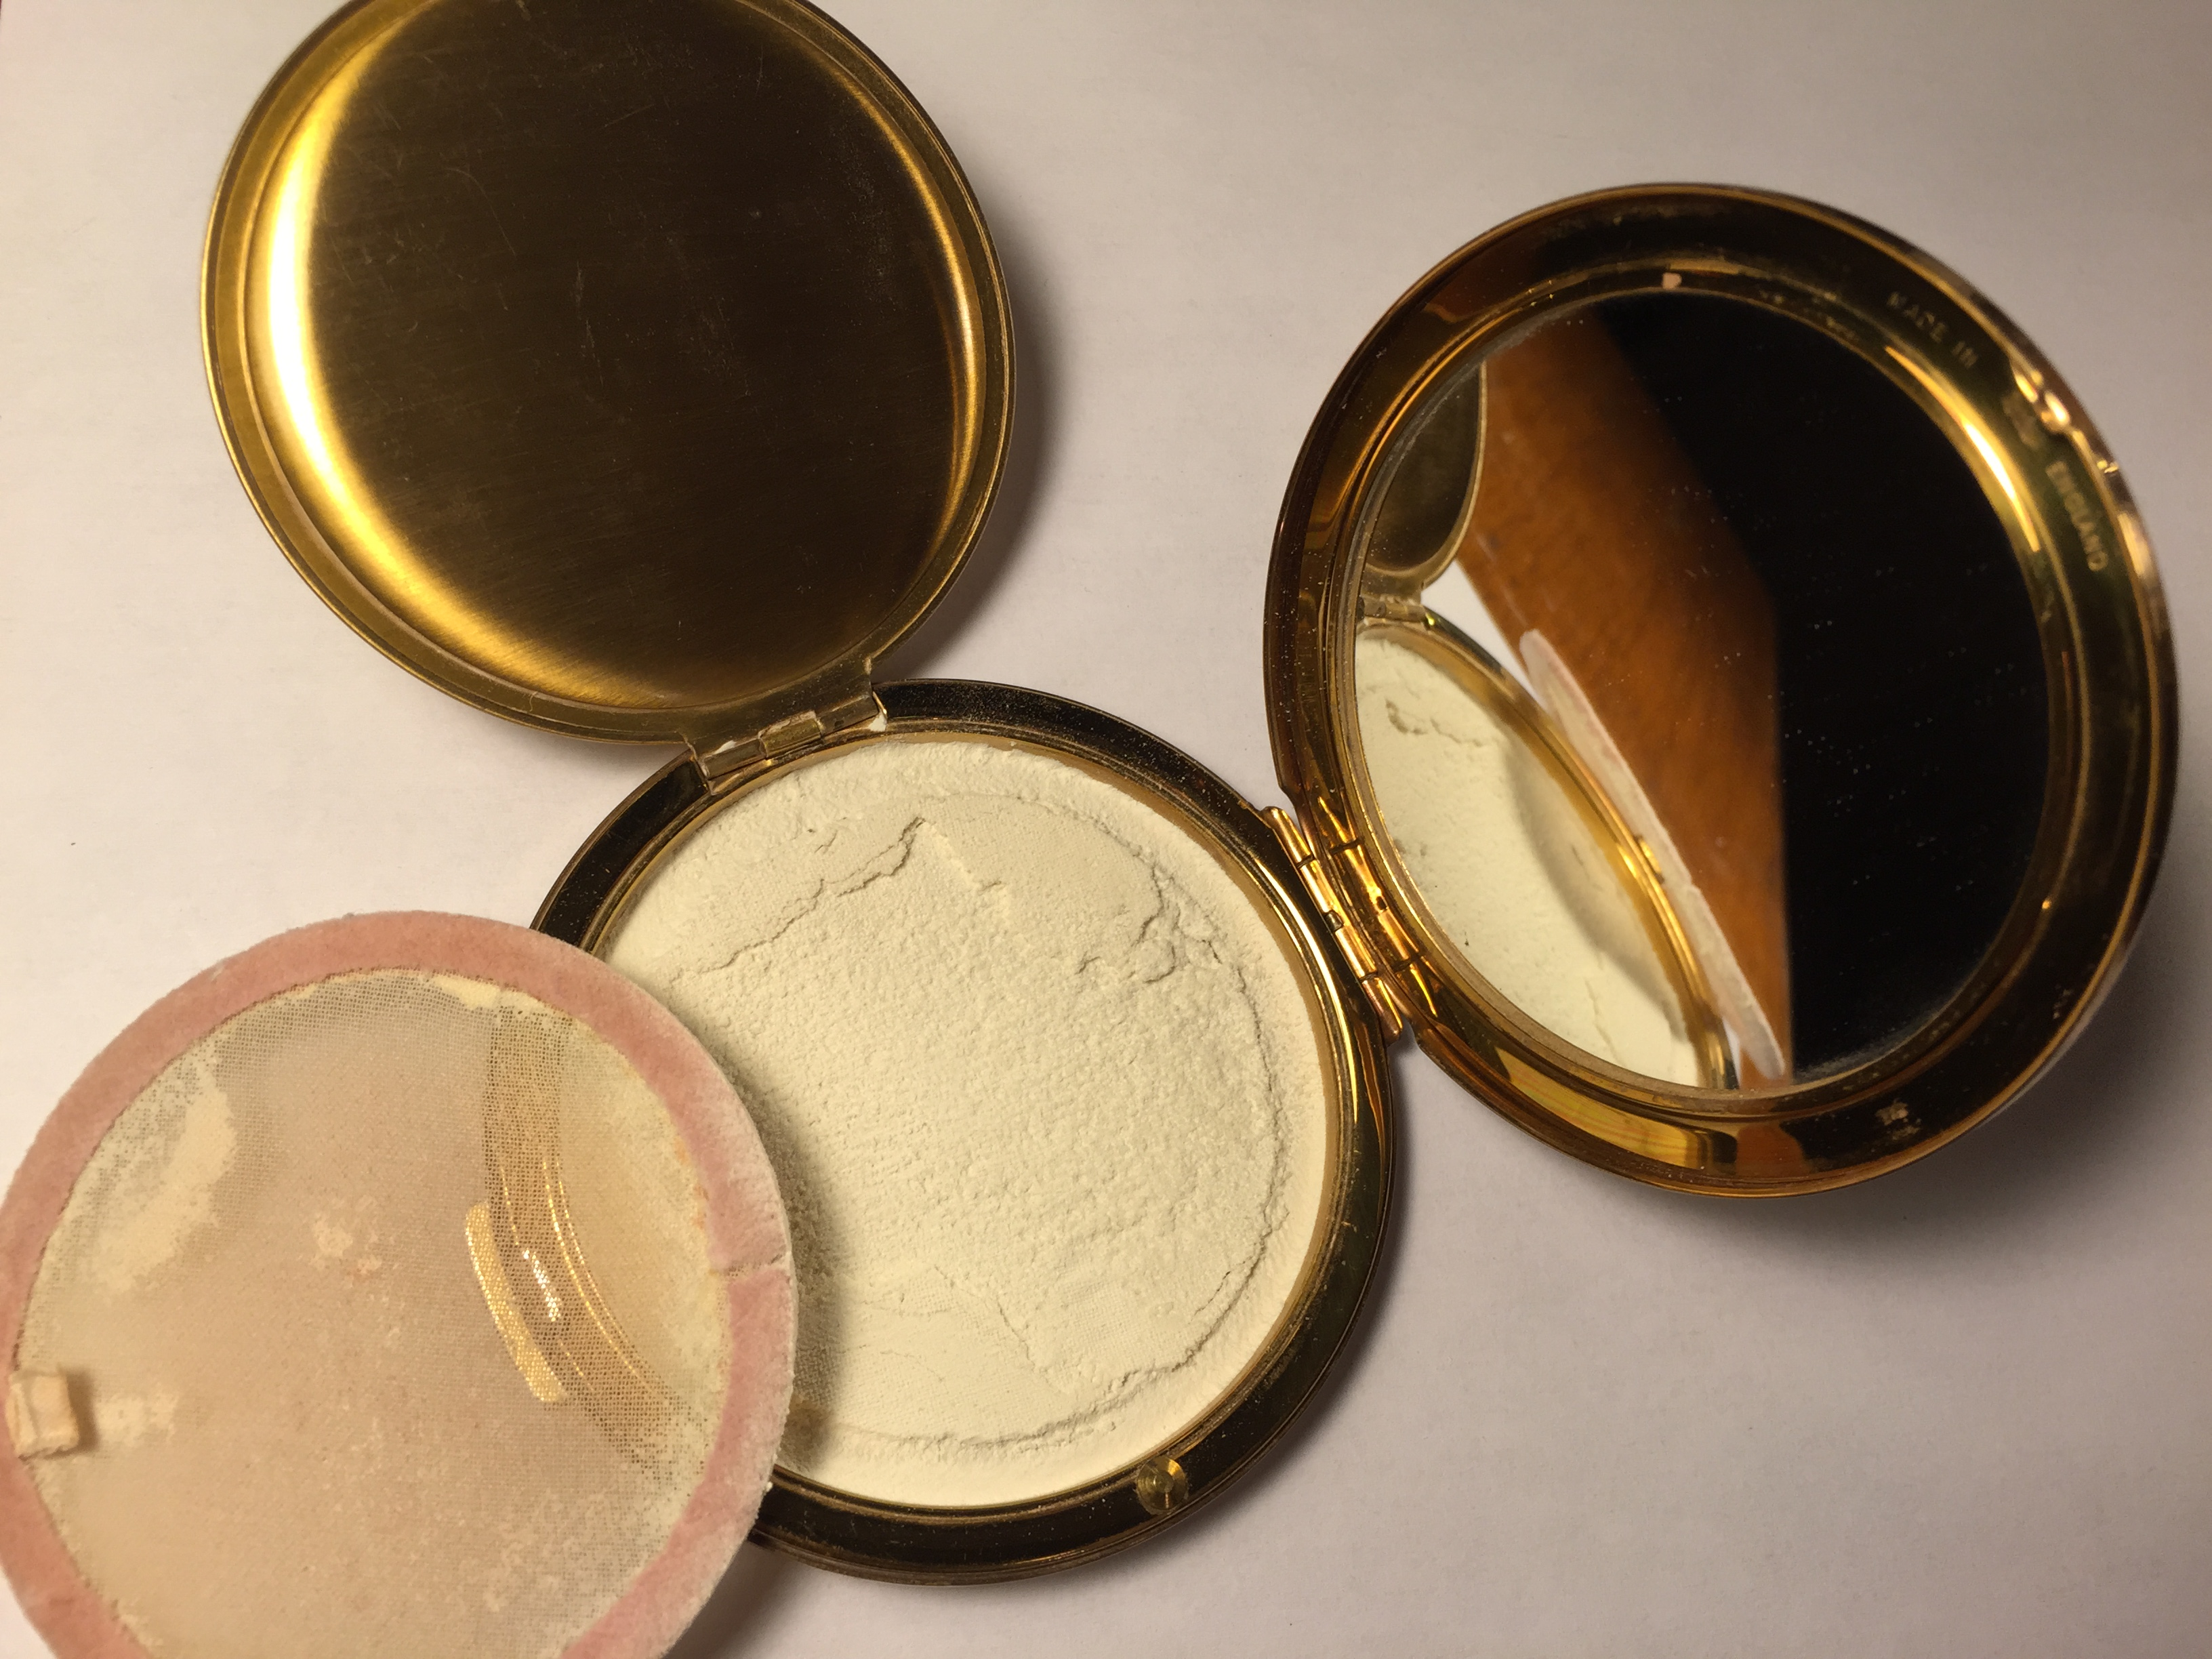 Vintage 1950s Stratton Loose Powder Compact